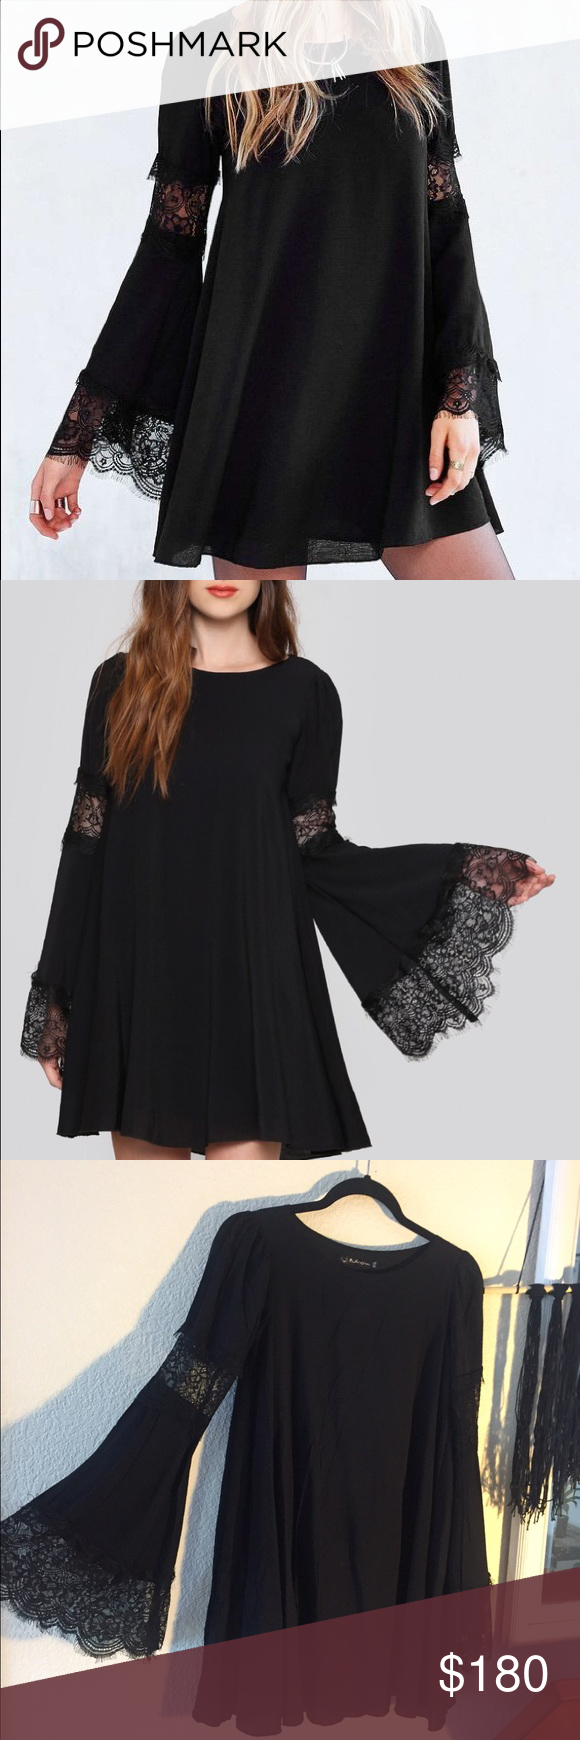 """Le'veon Bell and Sleeve Dress by For Love & Lemons Festival Bell Sleeve Dress- who knew looking this gorgeous could be so comfortable? Tent style mini dress featuring a wide neck, lace insets on the upper arm, and scalloped lace on the cuffs. Oversized fit. Unlined. *polyester lining, 34"""" bust, 31"""" length, 26"""" sleeve, measurements taken from size small. Worn once, no damages, in perfect condition, like new. Retailed for $300, sold out now. For Love and Lemons Dresses Mini"""